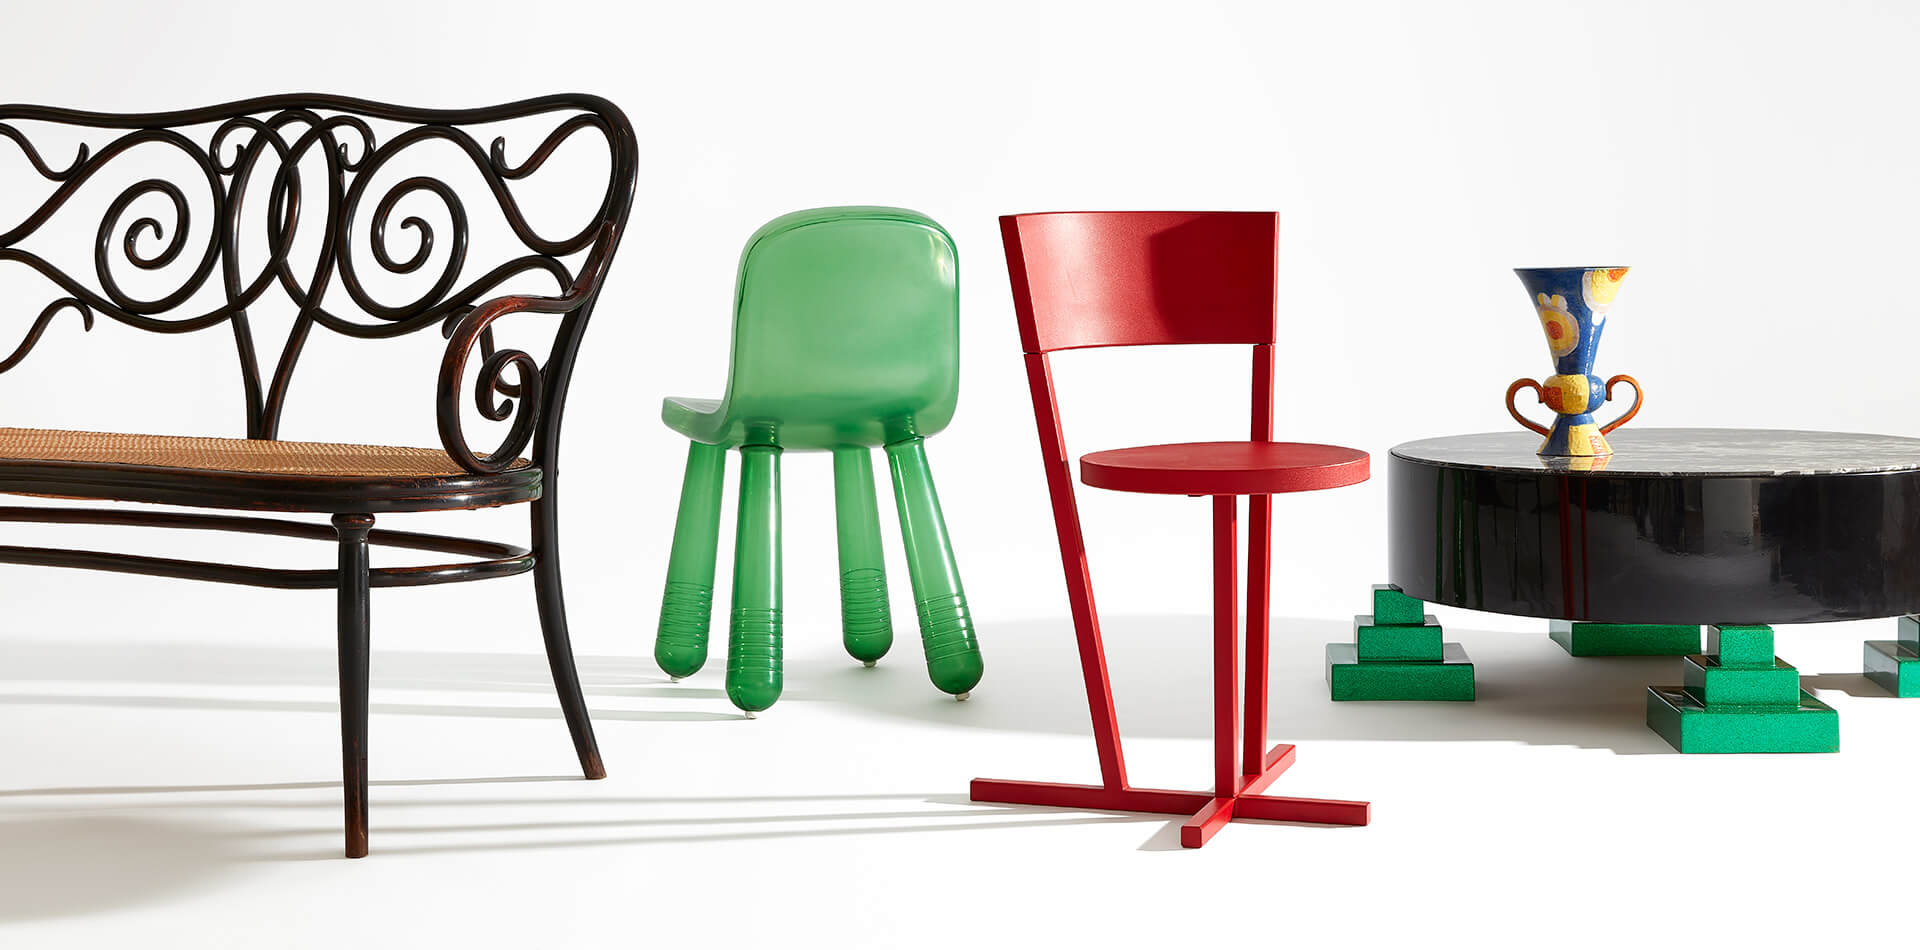 A collection of furniture design items on display at Stedelijk Museum's From Thonet to Dutch Design exhibition | From Thonet to Dutch Design – 125 years of living at the Stedelijk Museum Amsterdam | STIRworld